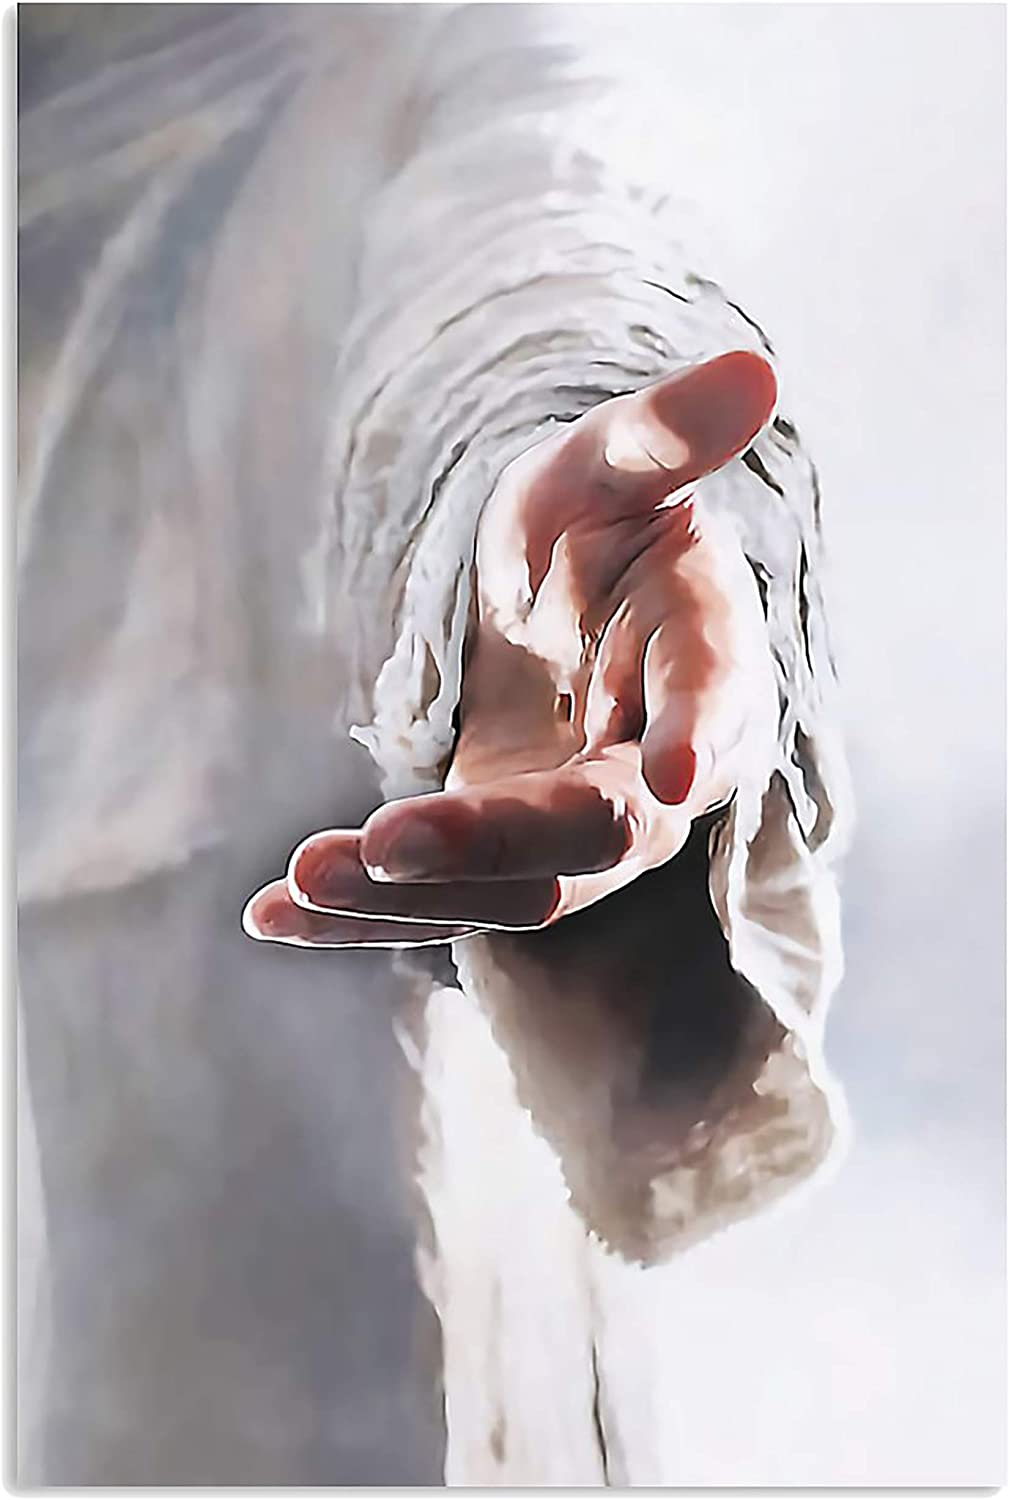 Designfullprint Faith Over Fear Give Me Your Hand Jesus Vertical Poster Wall Art Hanging Home Decor Office Decorations Gift for Christian (16